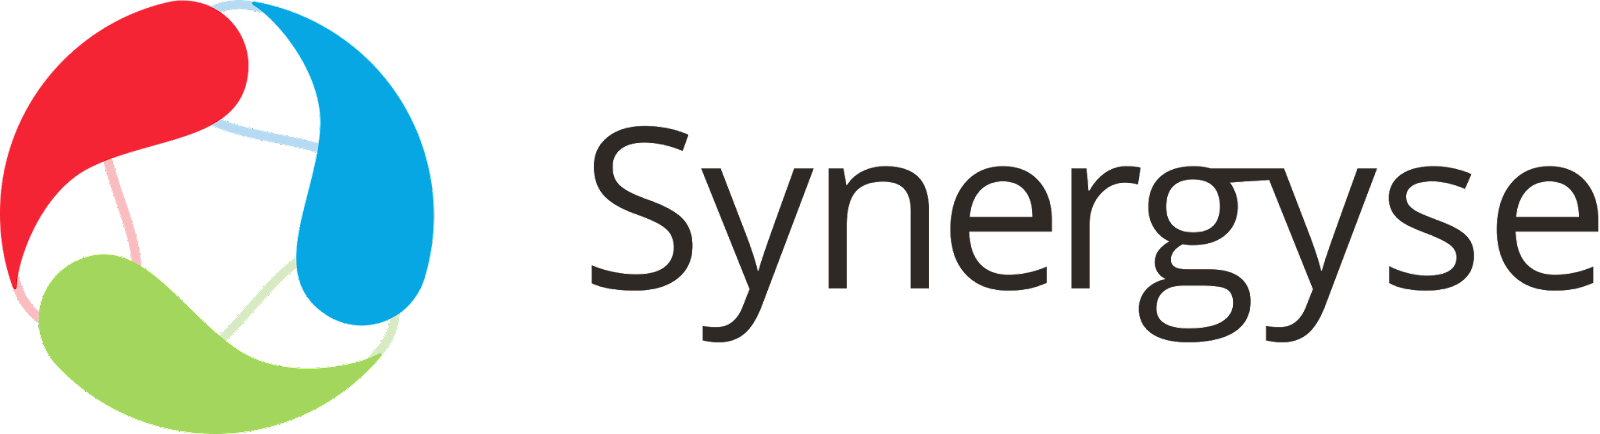 synergyse-logo-new.png